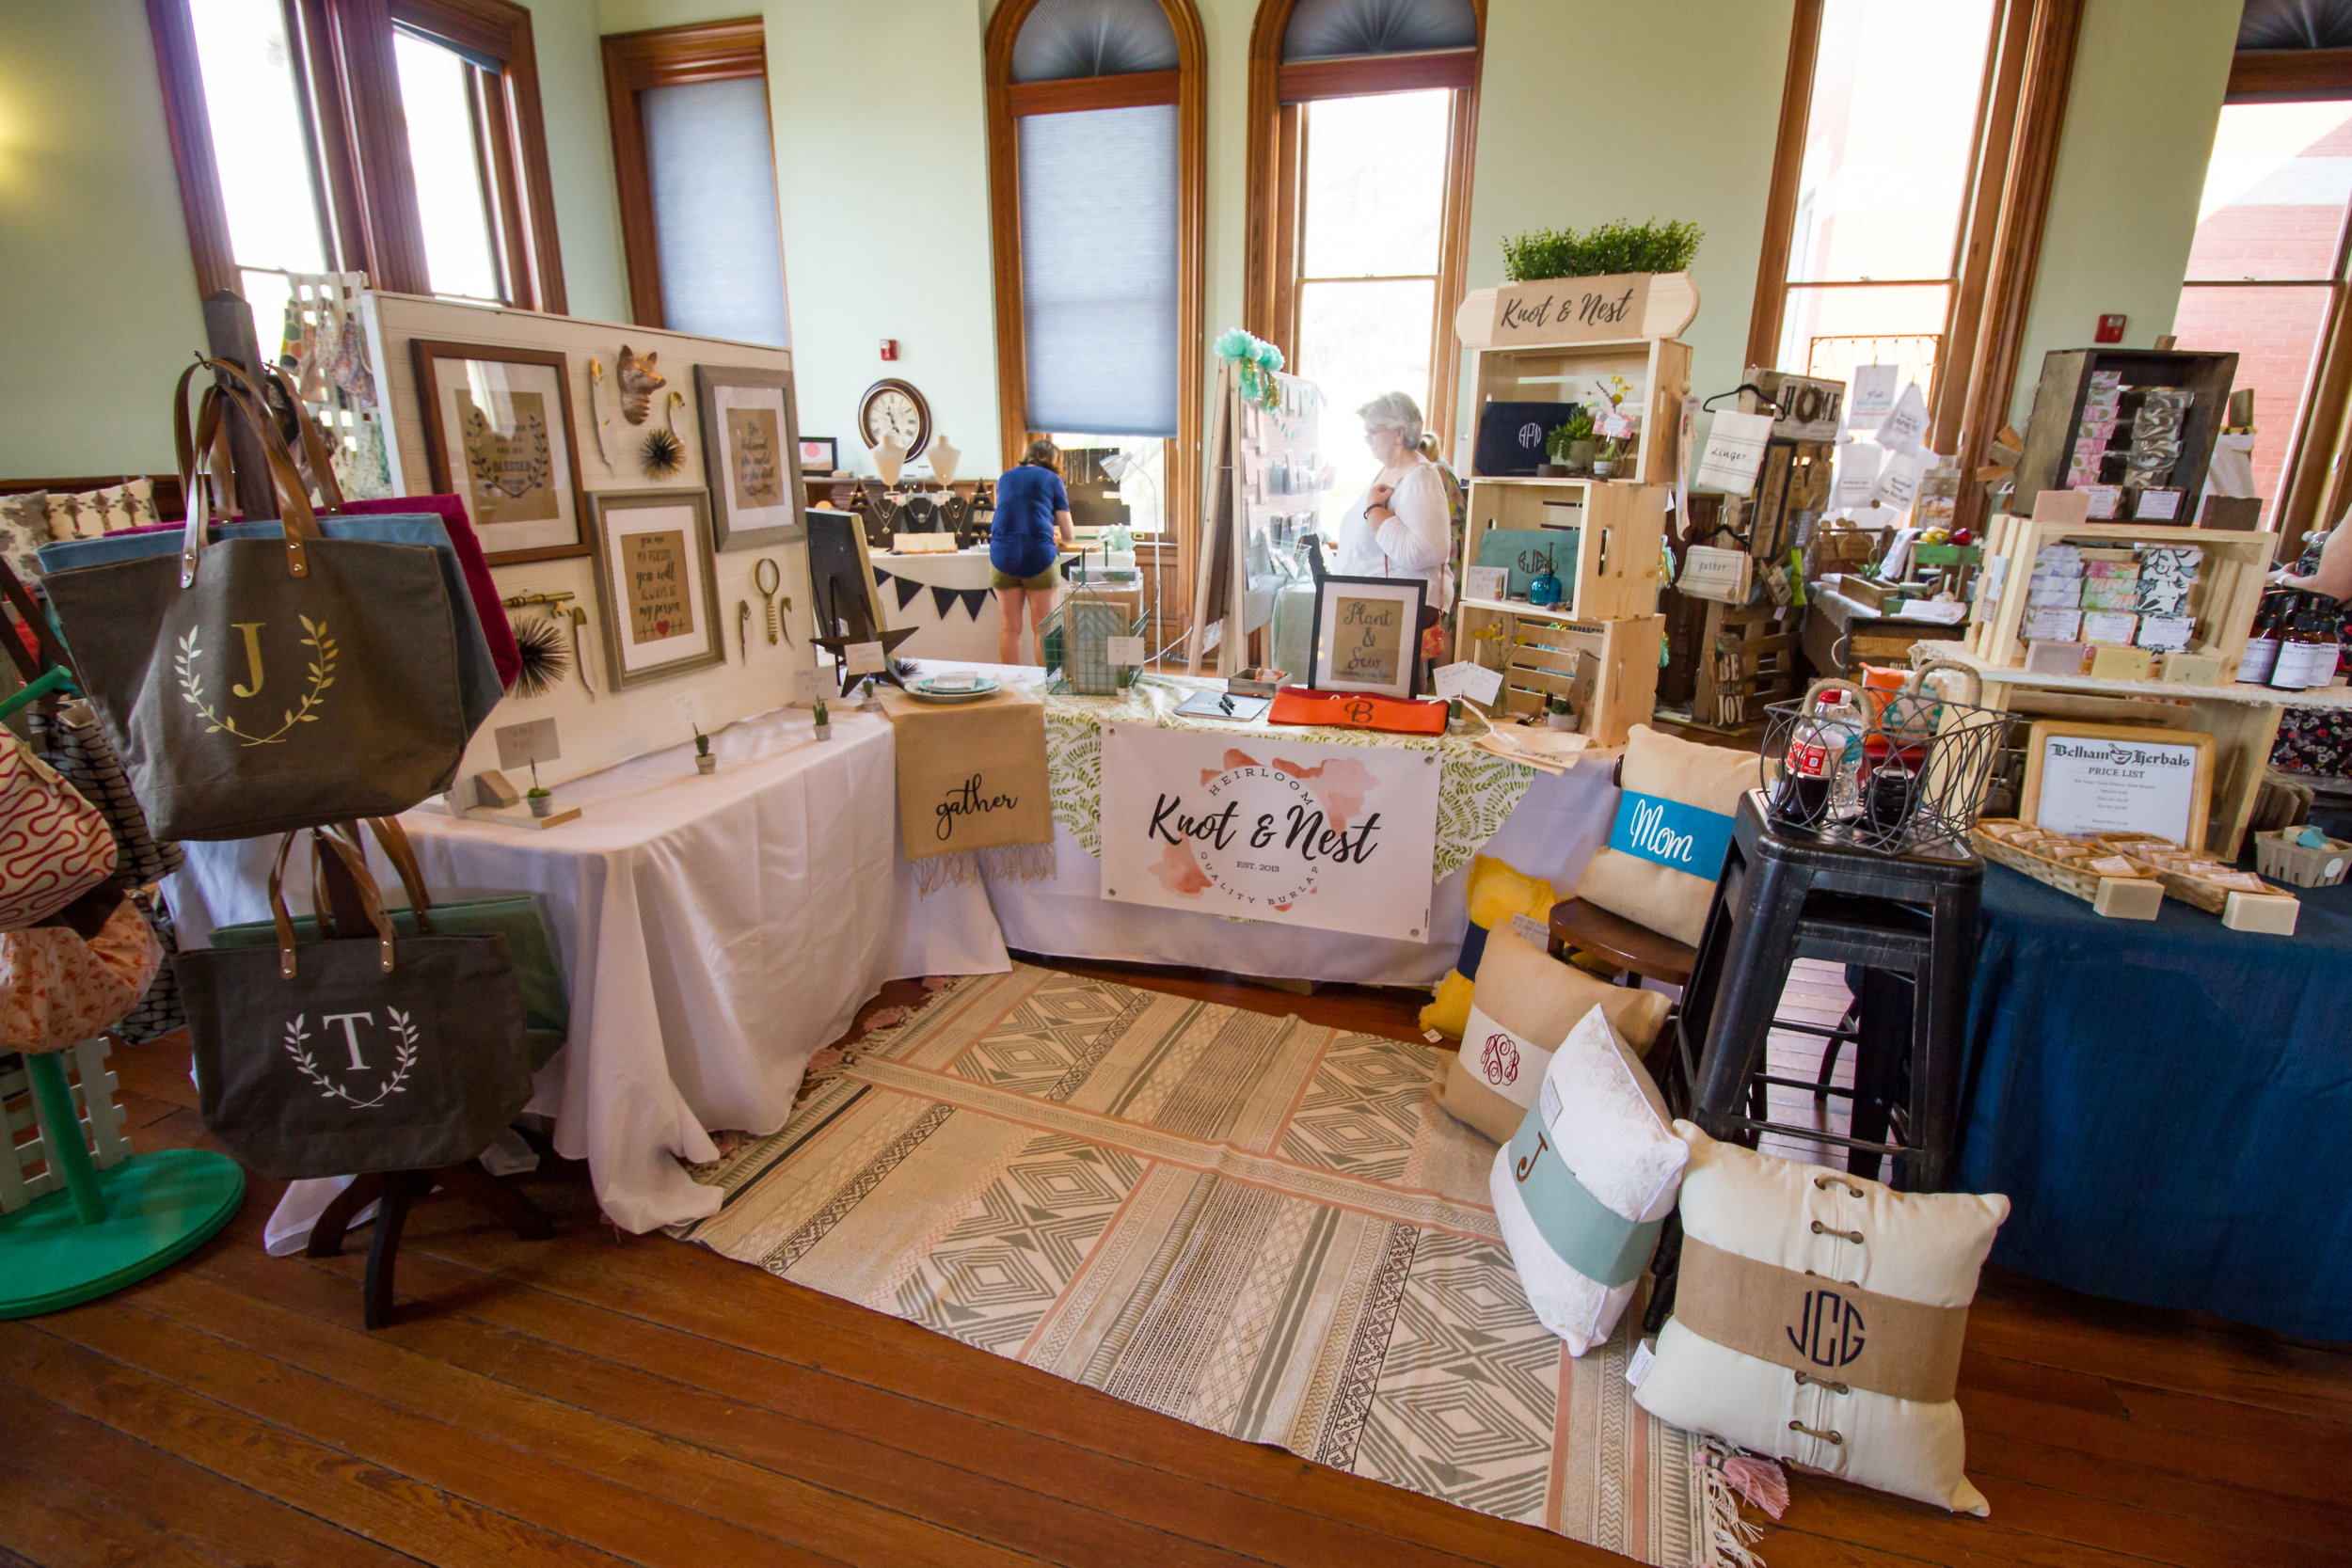 The booth for   Knot & Nest   :: Guest Books & Personalized Gifts for Any Occasion